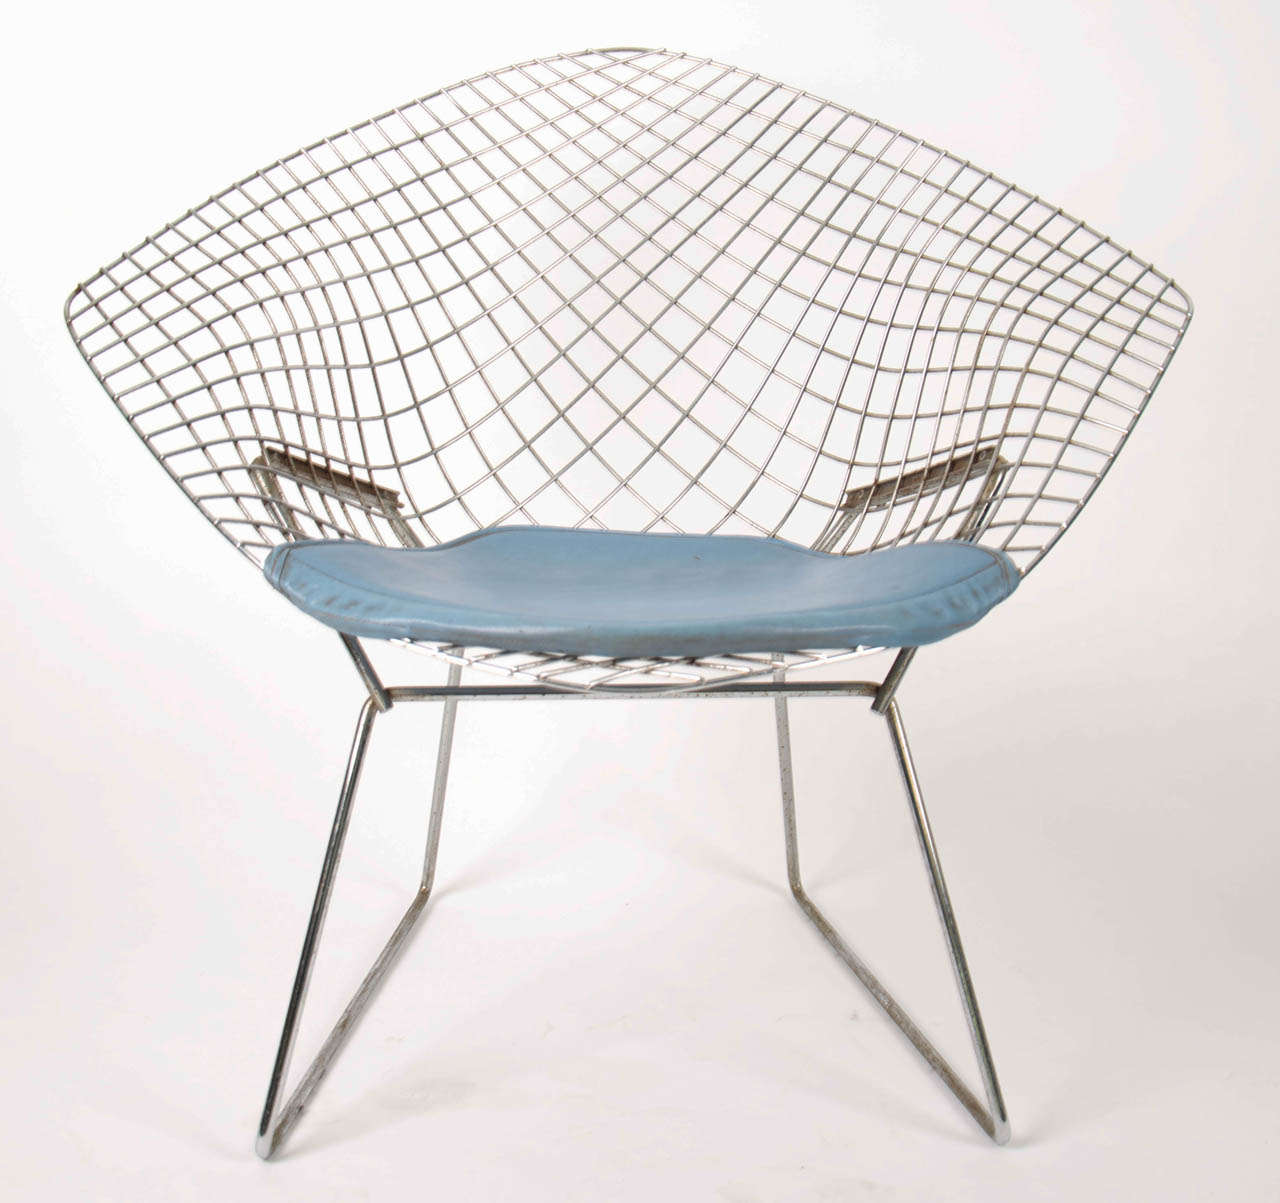 harry bertoia chrome diamond chair 1950 at 1stdibs. Black Bedroom Furniture Sets. Home Design Ideas